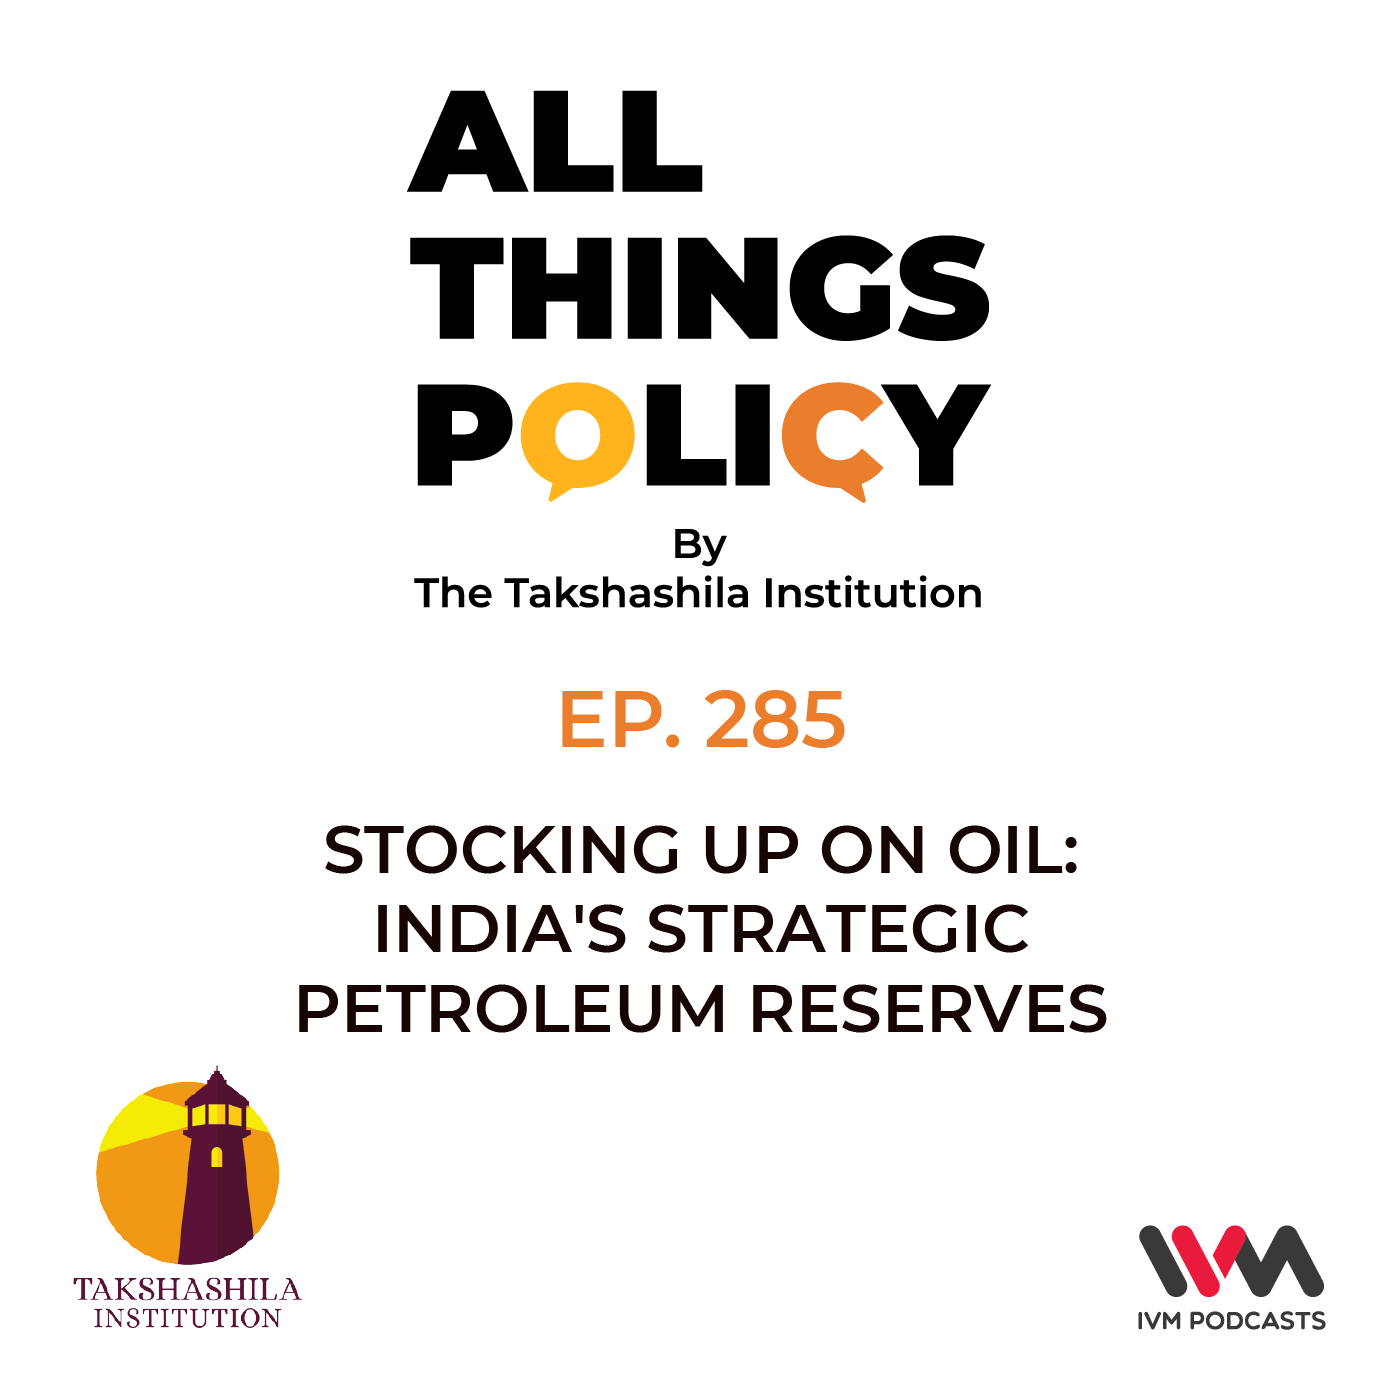 Ep. 285: Stocking up on Oil: India's Strategic Petroleum Reserves